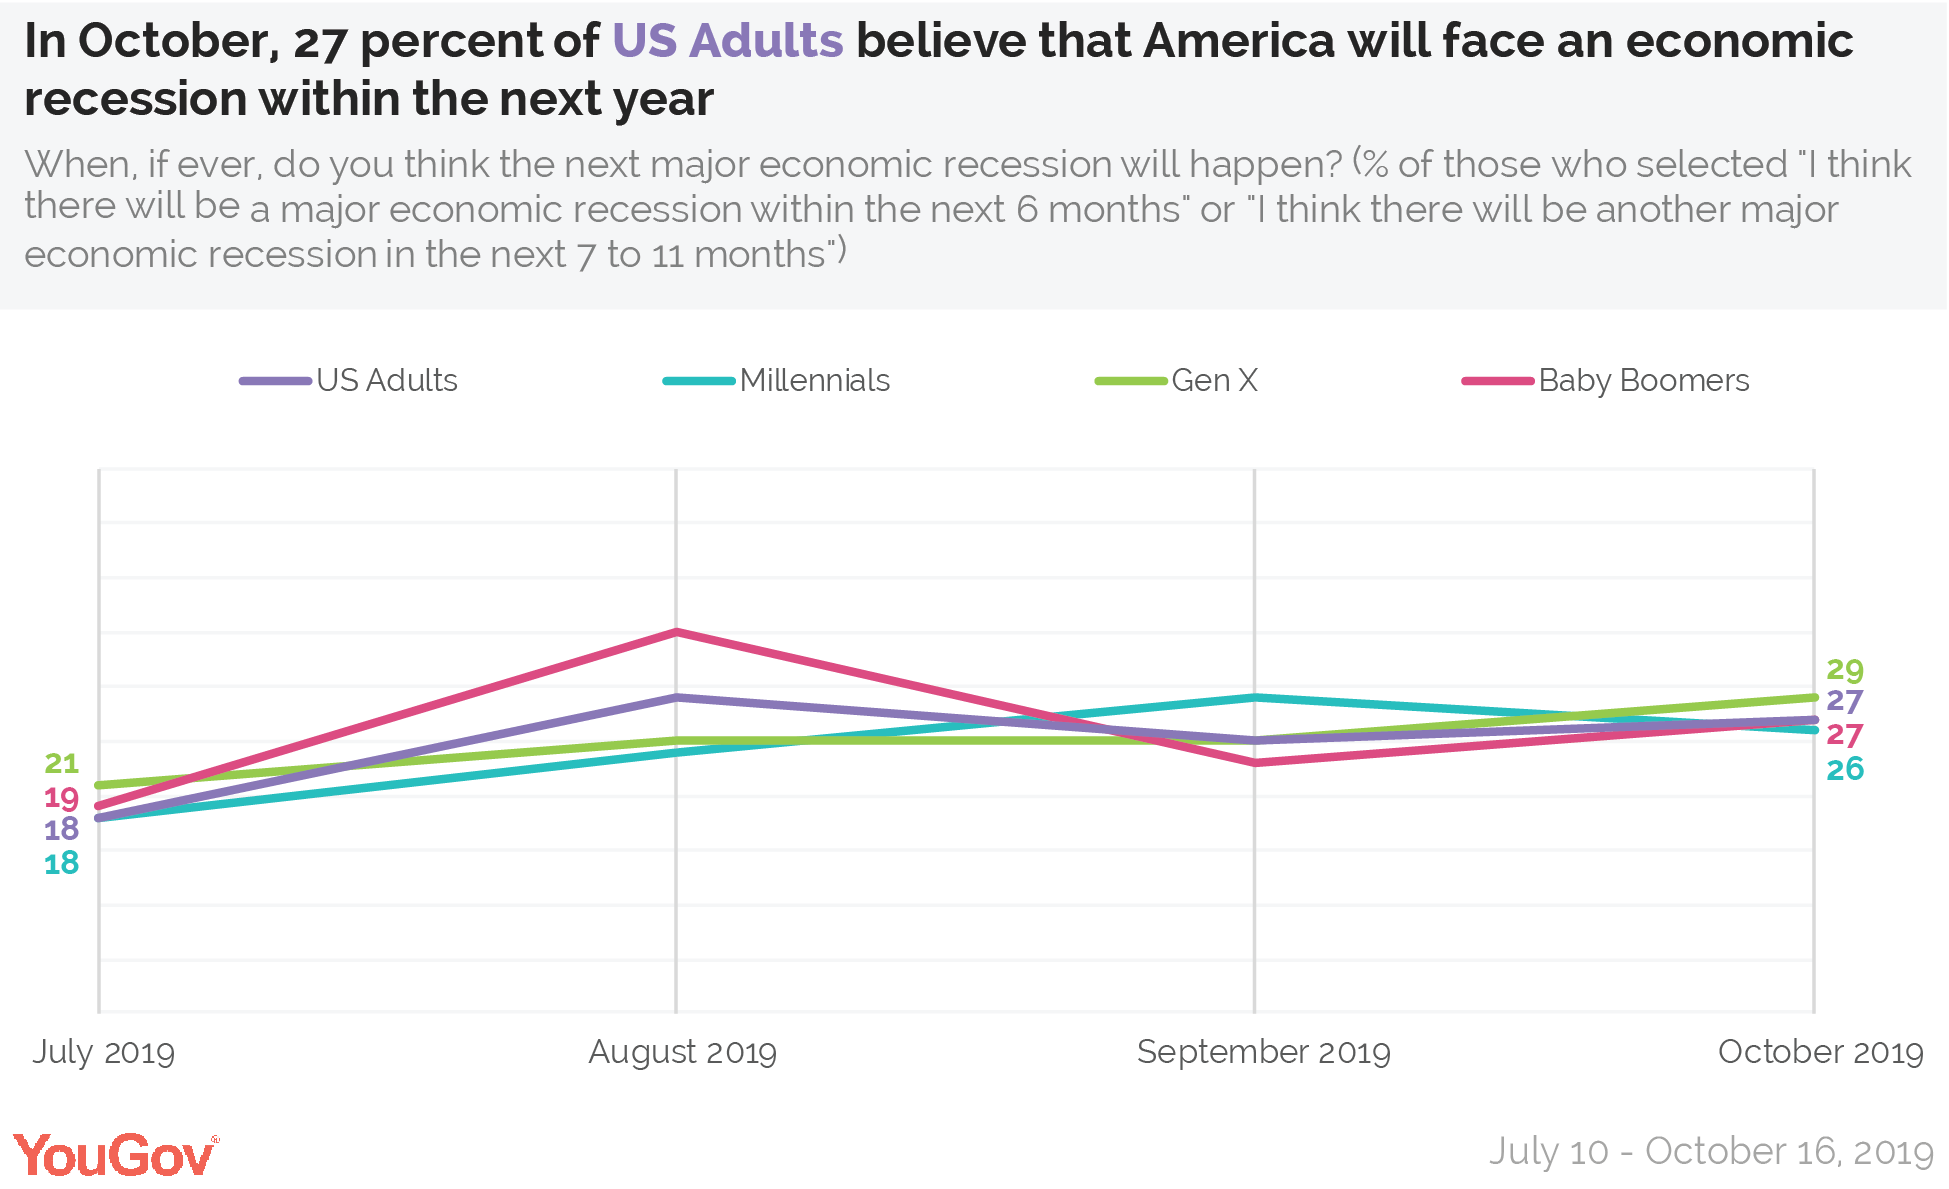 In October, 27 percent of US Adults believe that America will face an economic recession within the next year